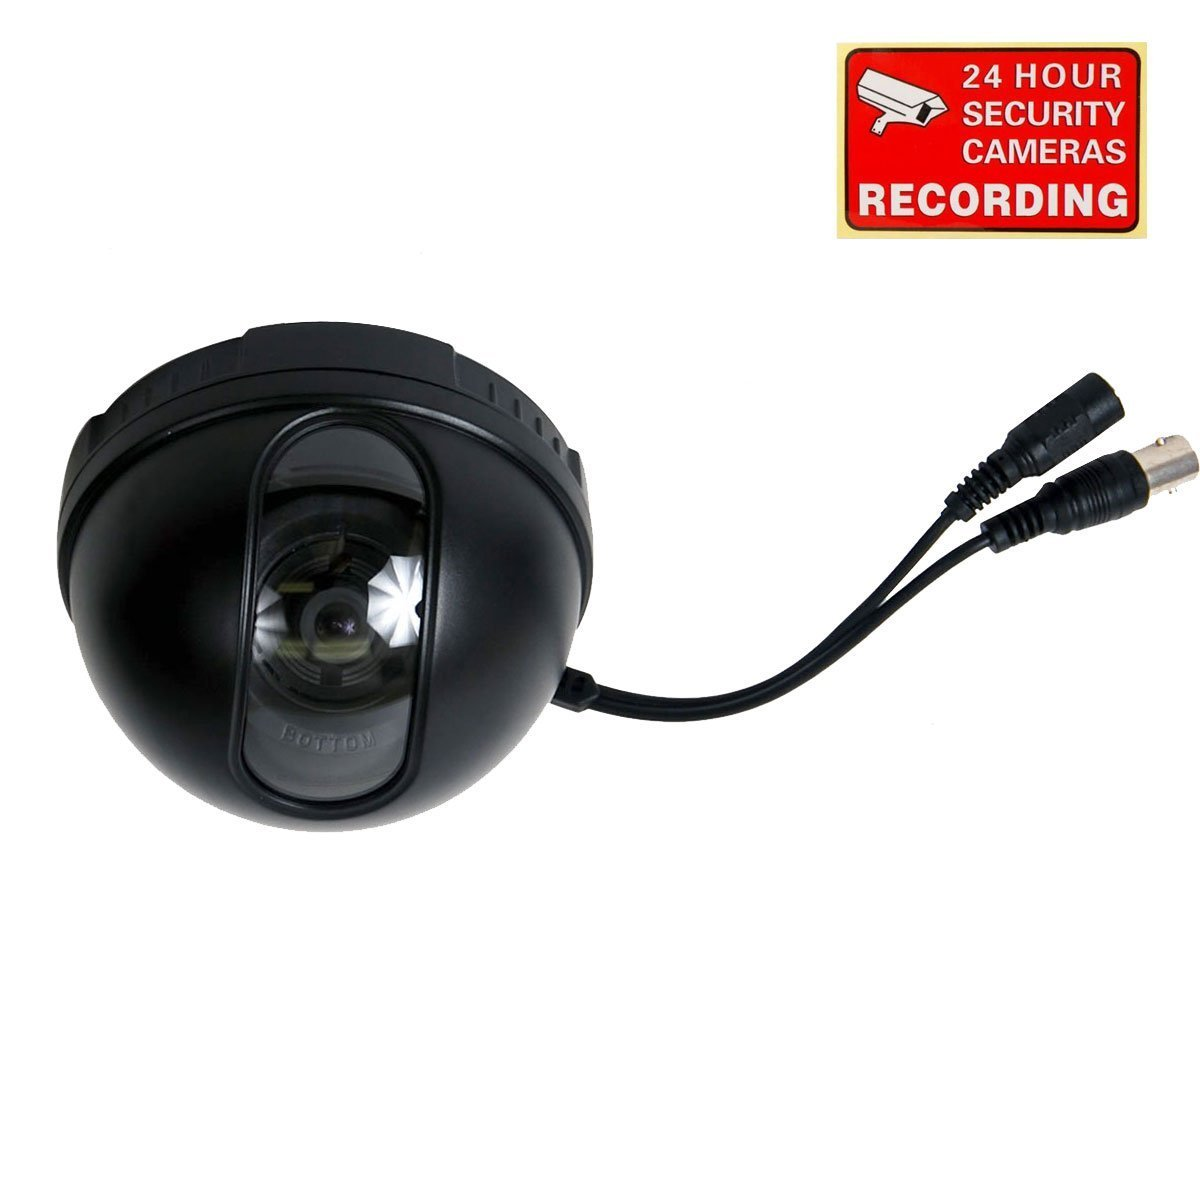 VideoSecu Color CCD Dome Security Camera DSP 3.6mm Wide Angle Lens for CCTV DVR Home Surveillance System with Bonus Warning Decal DM35B 1P9